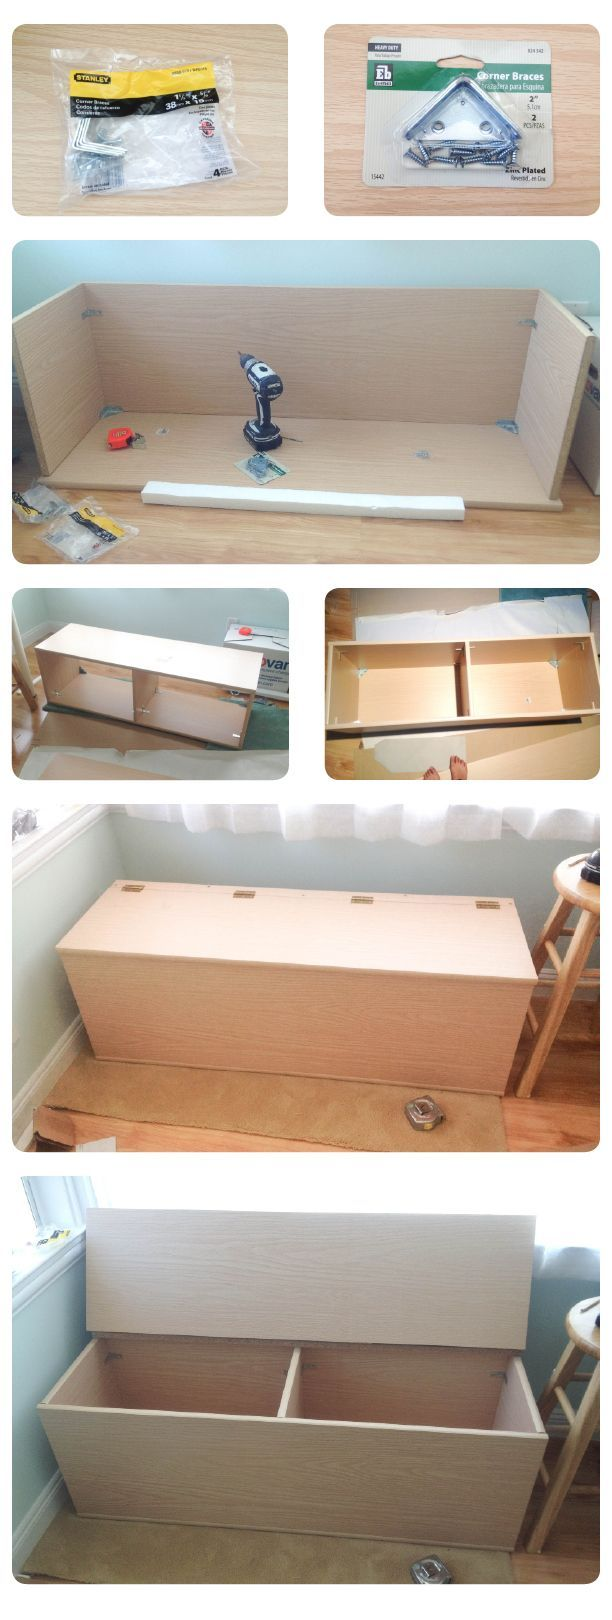 diy storage bench add cushion use bench as seating put bench